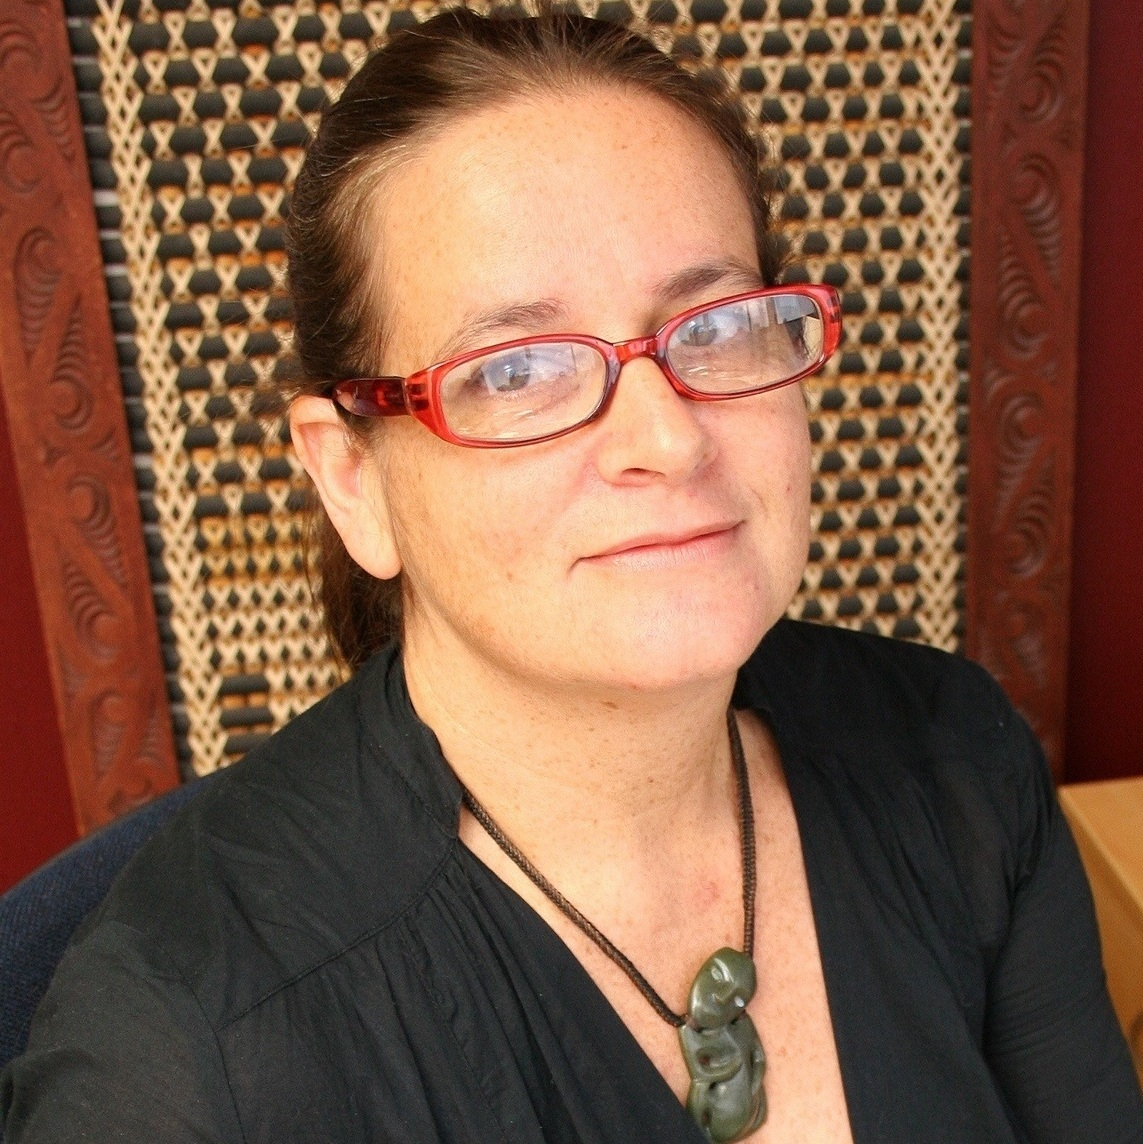 Helen Moewaka Barnes (Ngāti Wai/Ngāti Hine/Ngāti Manu) is the Director of Whāriki and Co-director of the SHORE and Whariki Research Centre. She has worked on research in many areas; more recently relationships between the health of people and the health of environments, sexual coercion, alcohol and youth well-being and identity. Her work is both qualitative and quantitative and she is also involved in developing research within Māori paradigms.